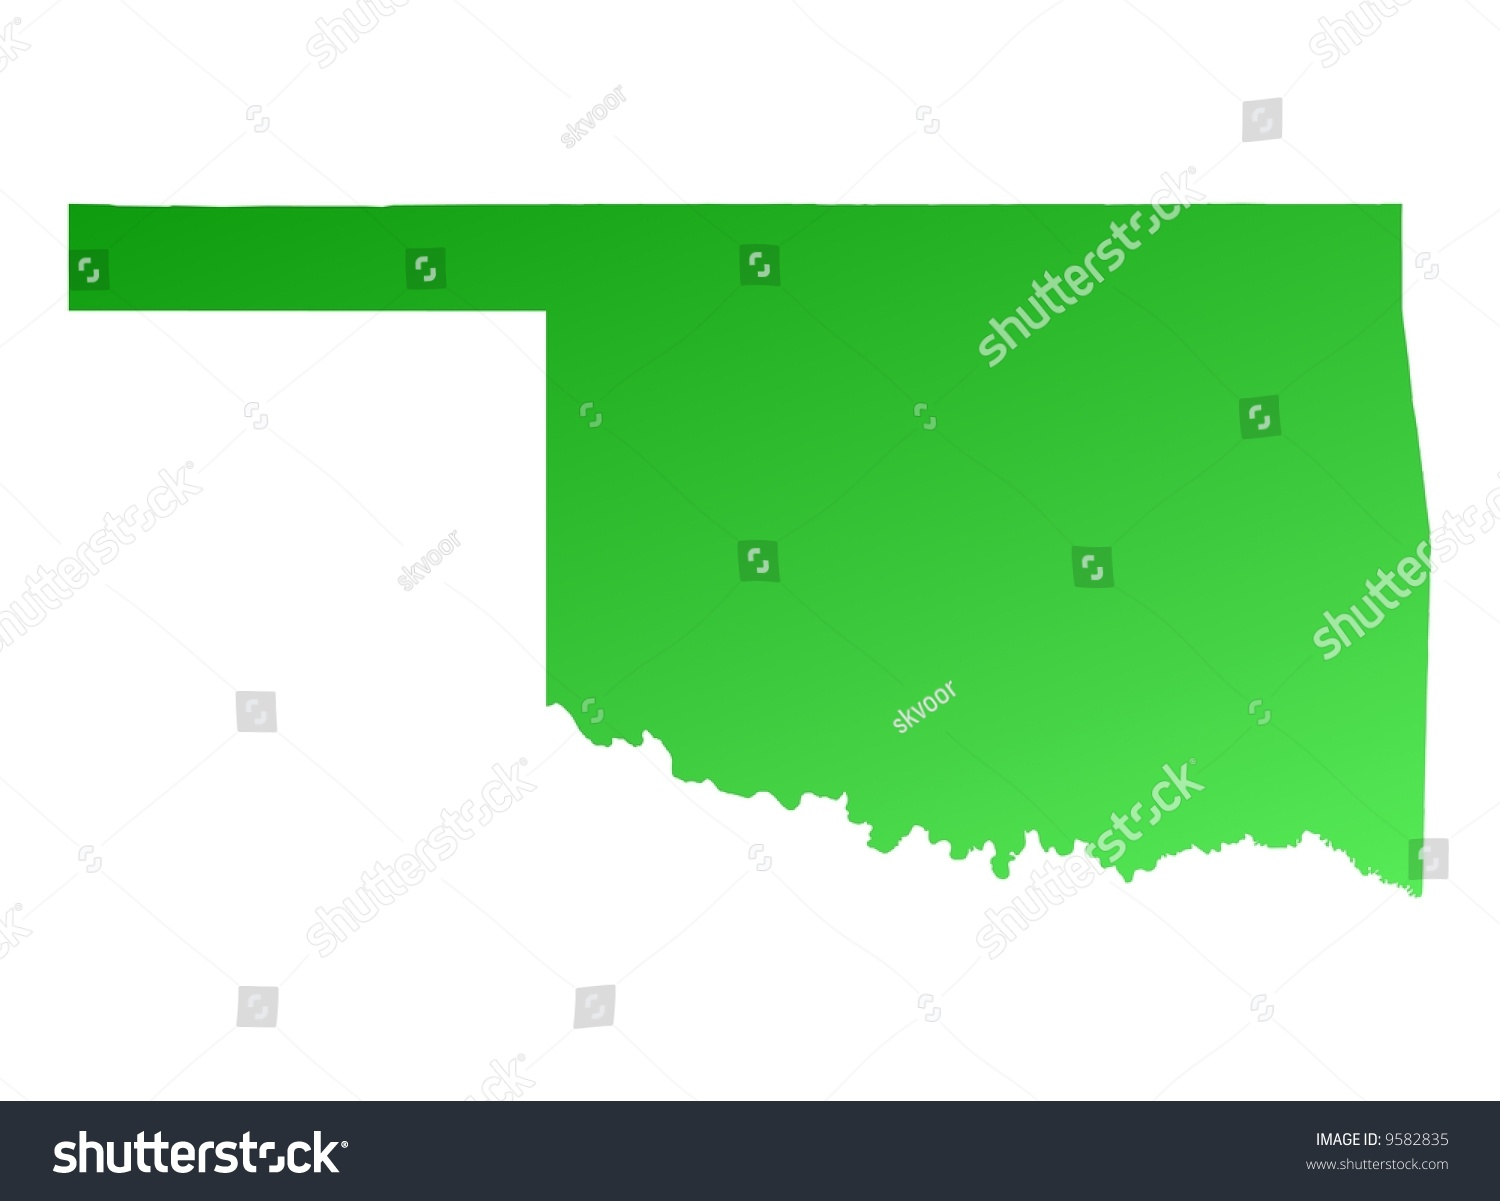 Oklahoma Map In Usa.Green Gradient Oklahoma Map Usa Detailed Stock Illustration